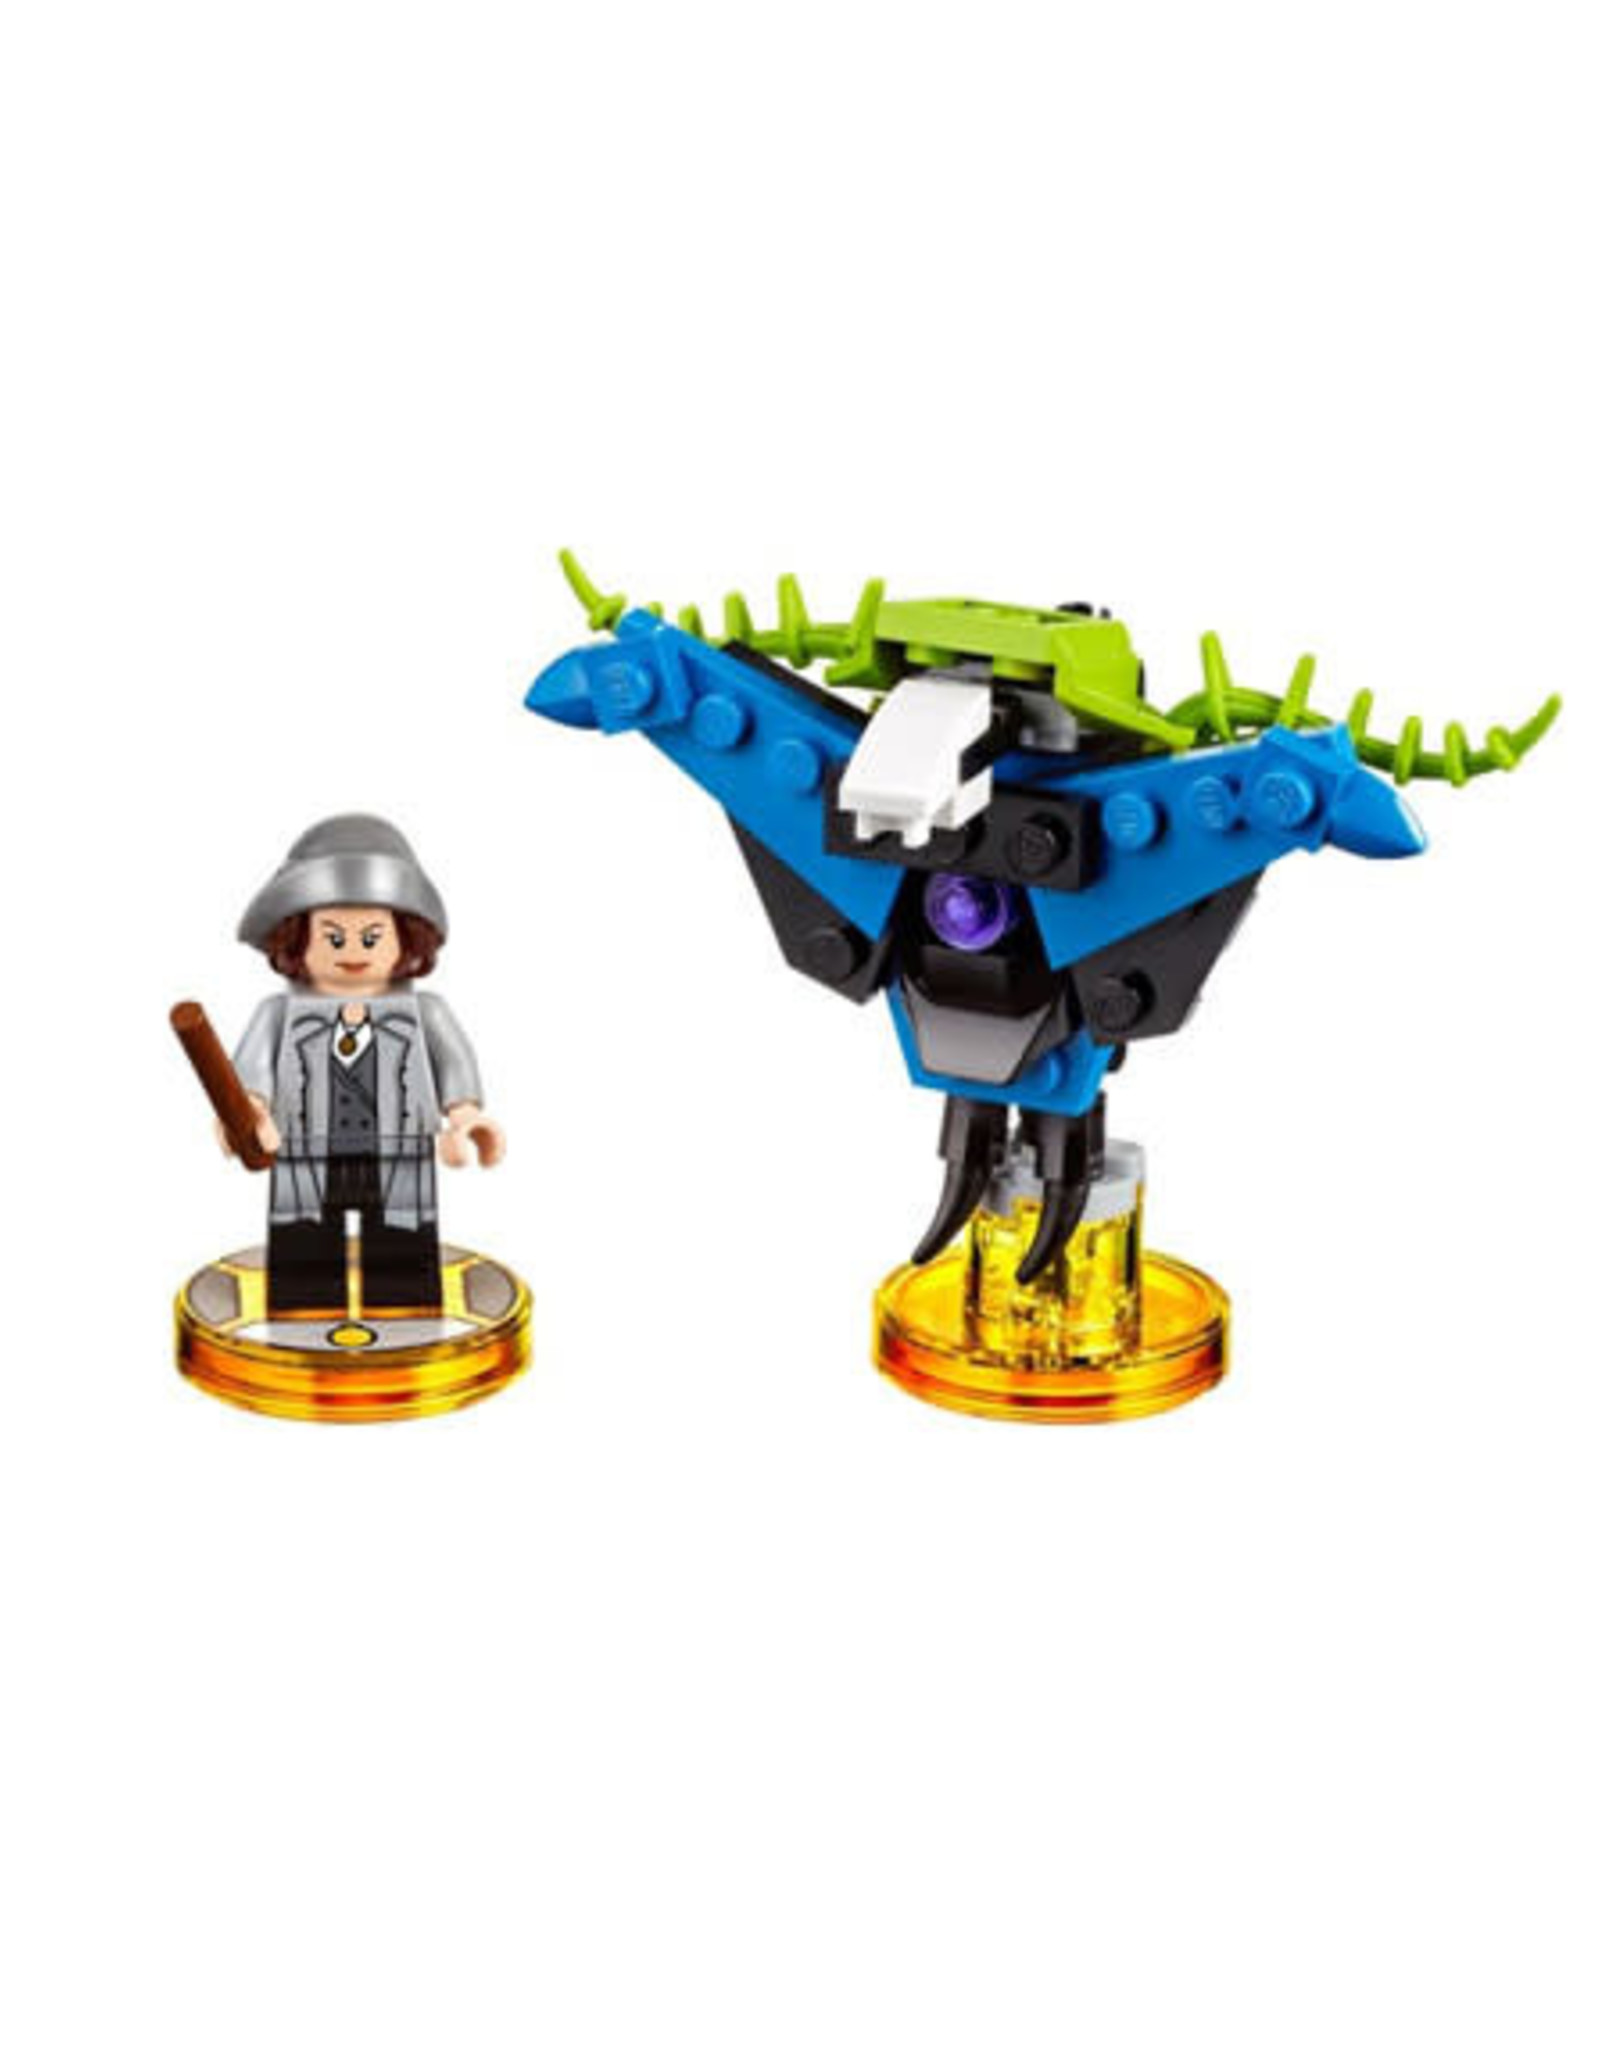 LEGO LEGO 71257 Fun Pack - Fantastic Beasts and Where to Find Them (Tina Goldstein and Swooping Evil) Dimensions